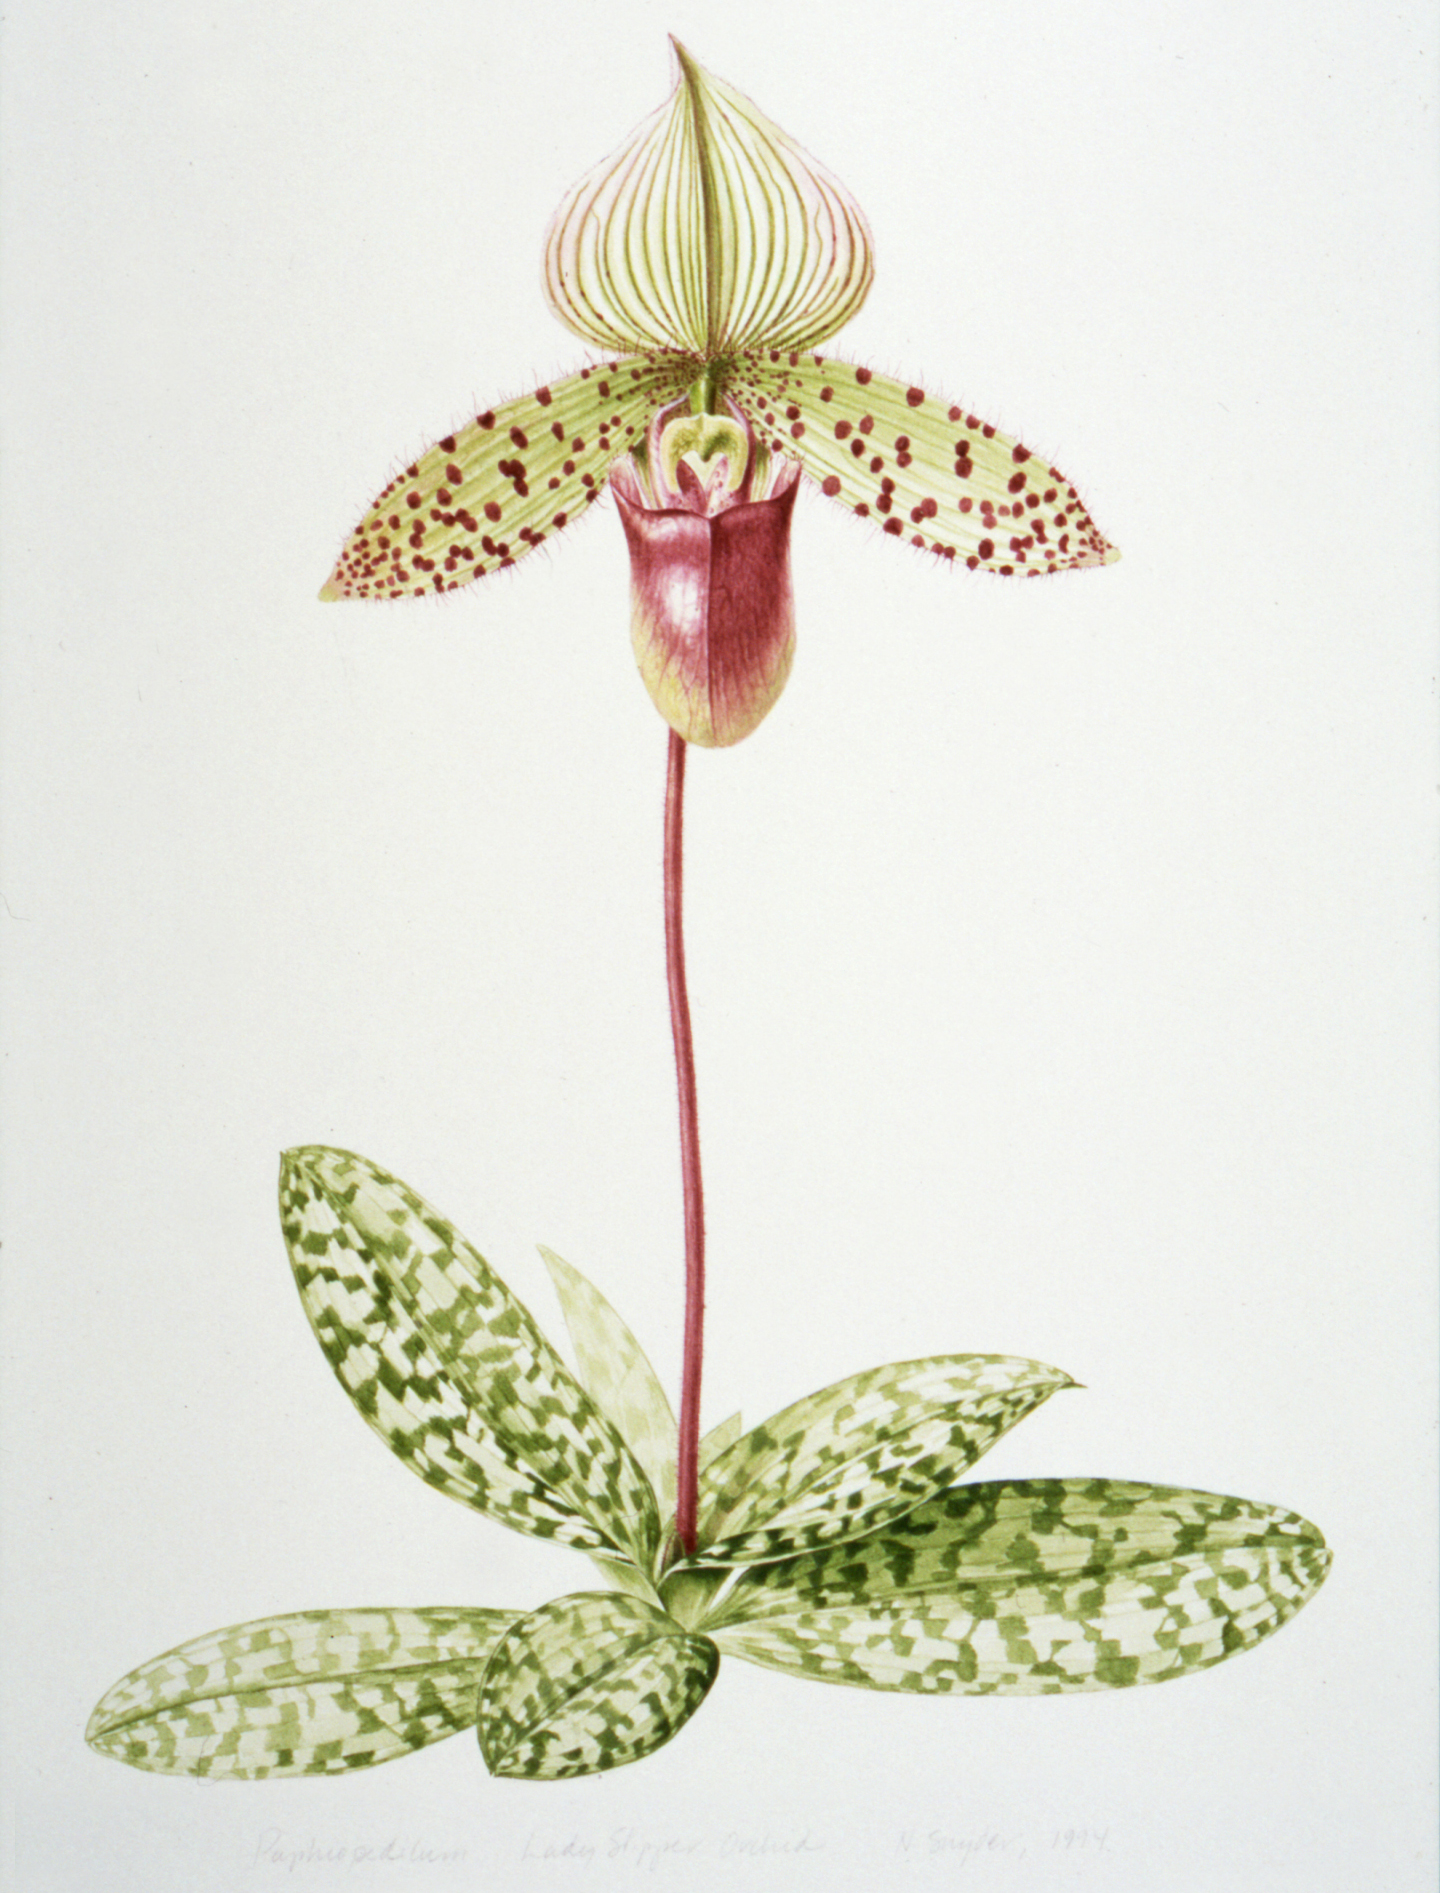 Orchid Scientific Drawing Illustration Lady's Slipper